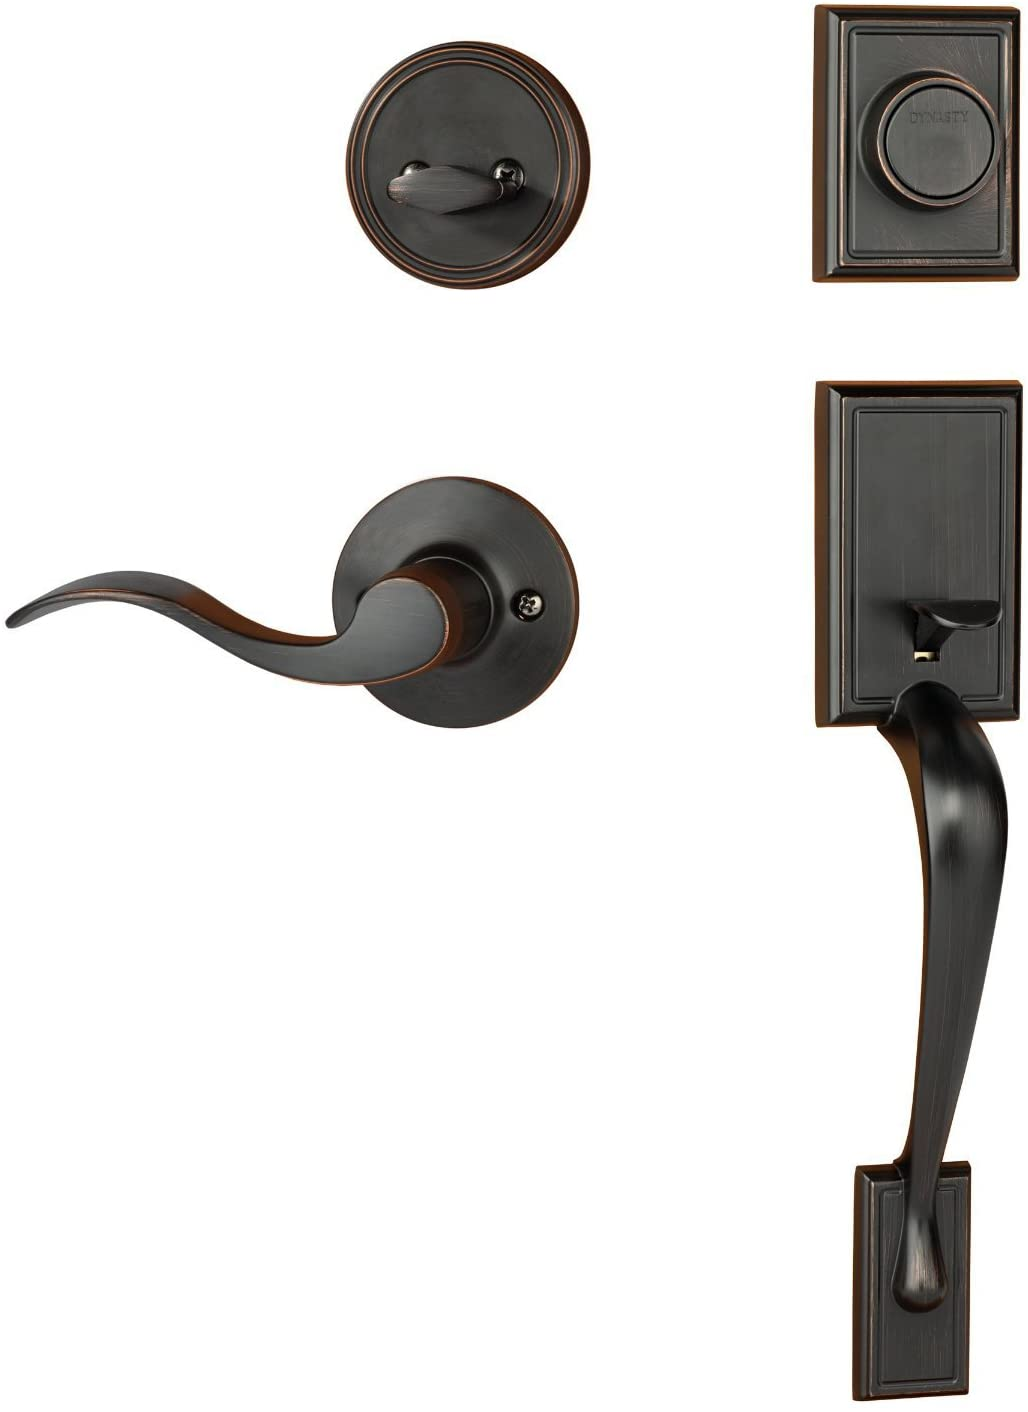 Dynasty Hardware Ridgecrest RID-HER-405-12PR Right Hand Dummy Front Door Handleset with Heritage Lever, Aged Oil Rubbed Bronze